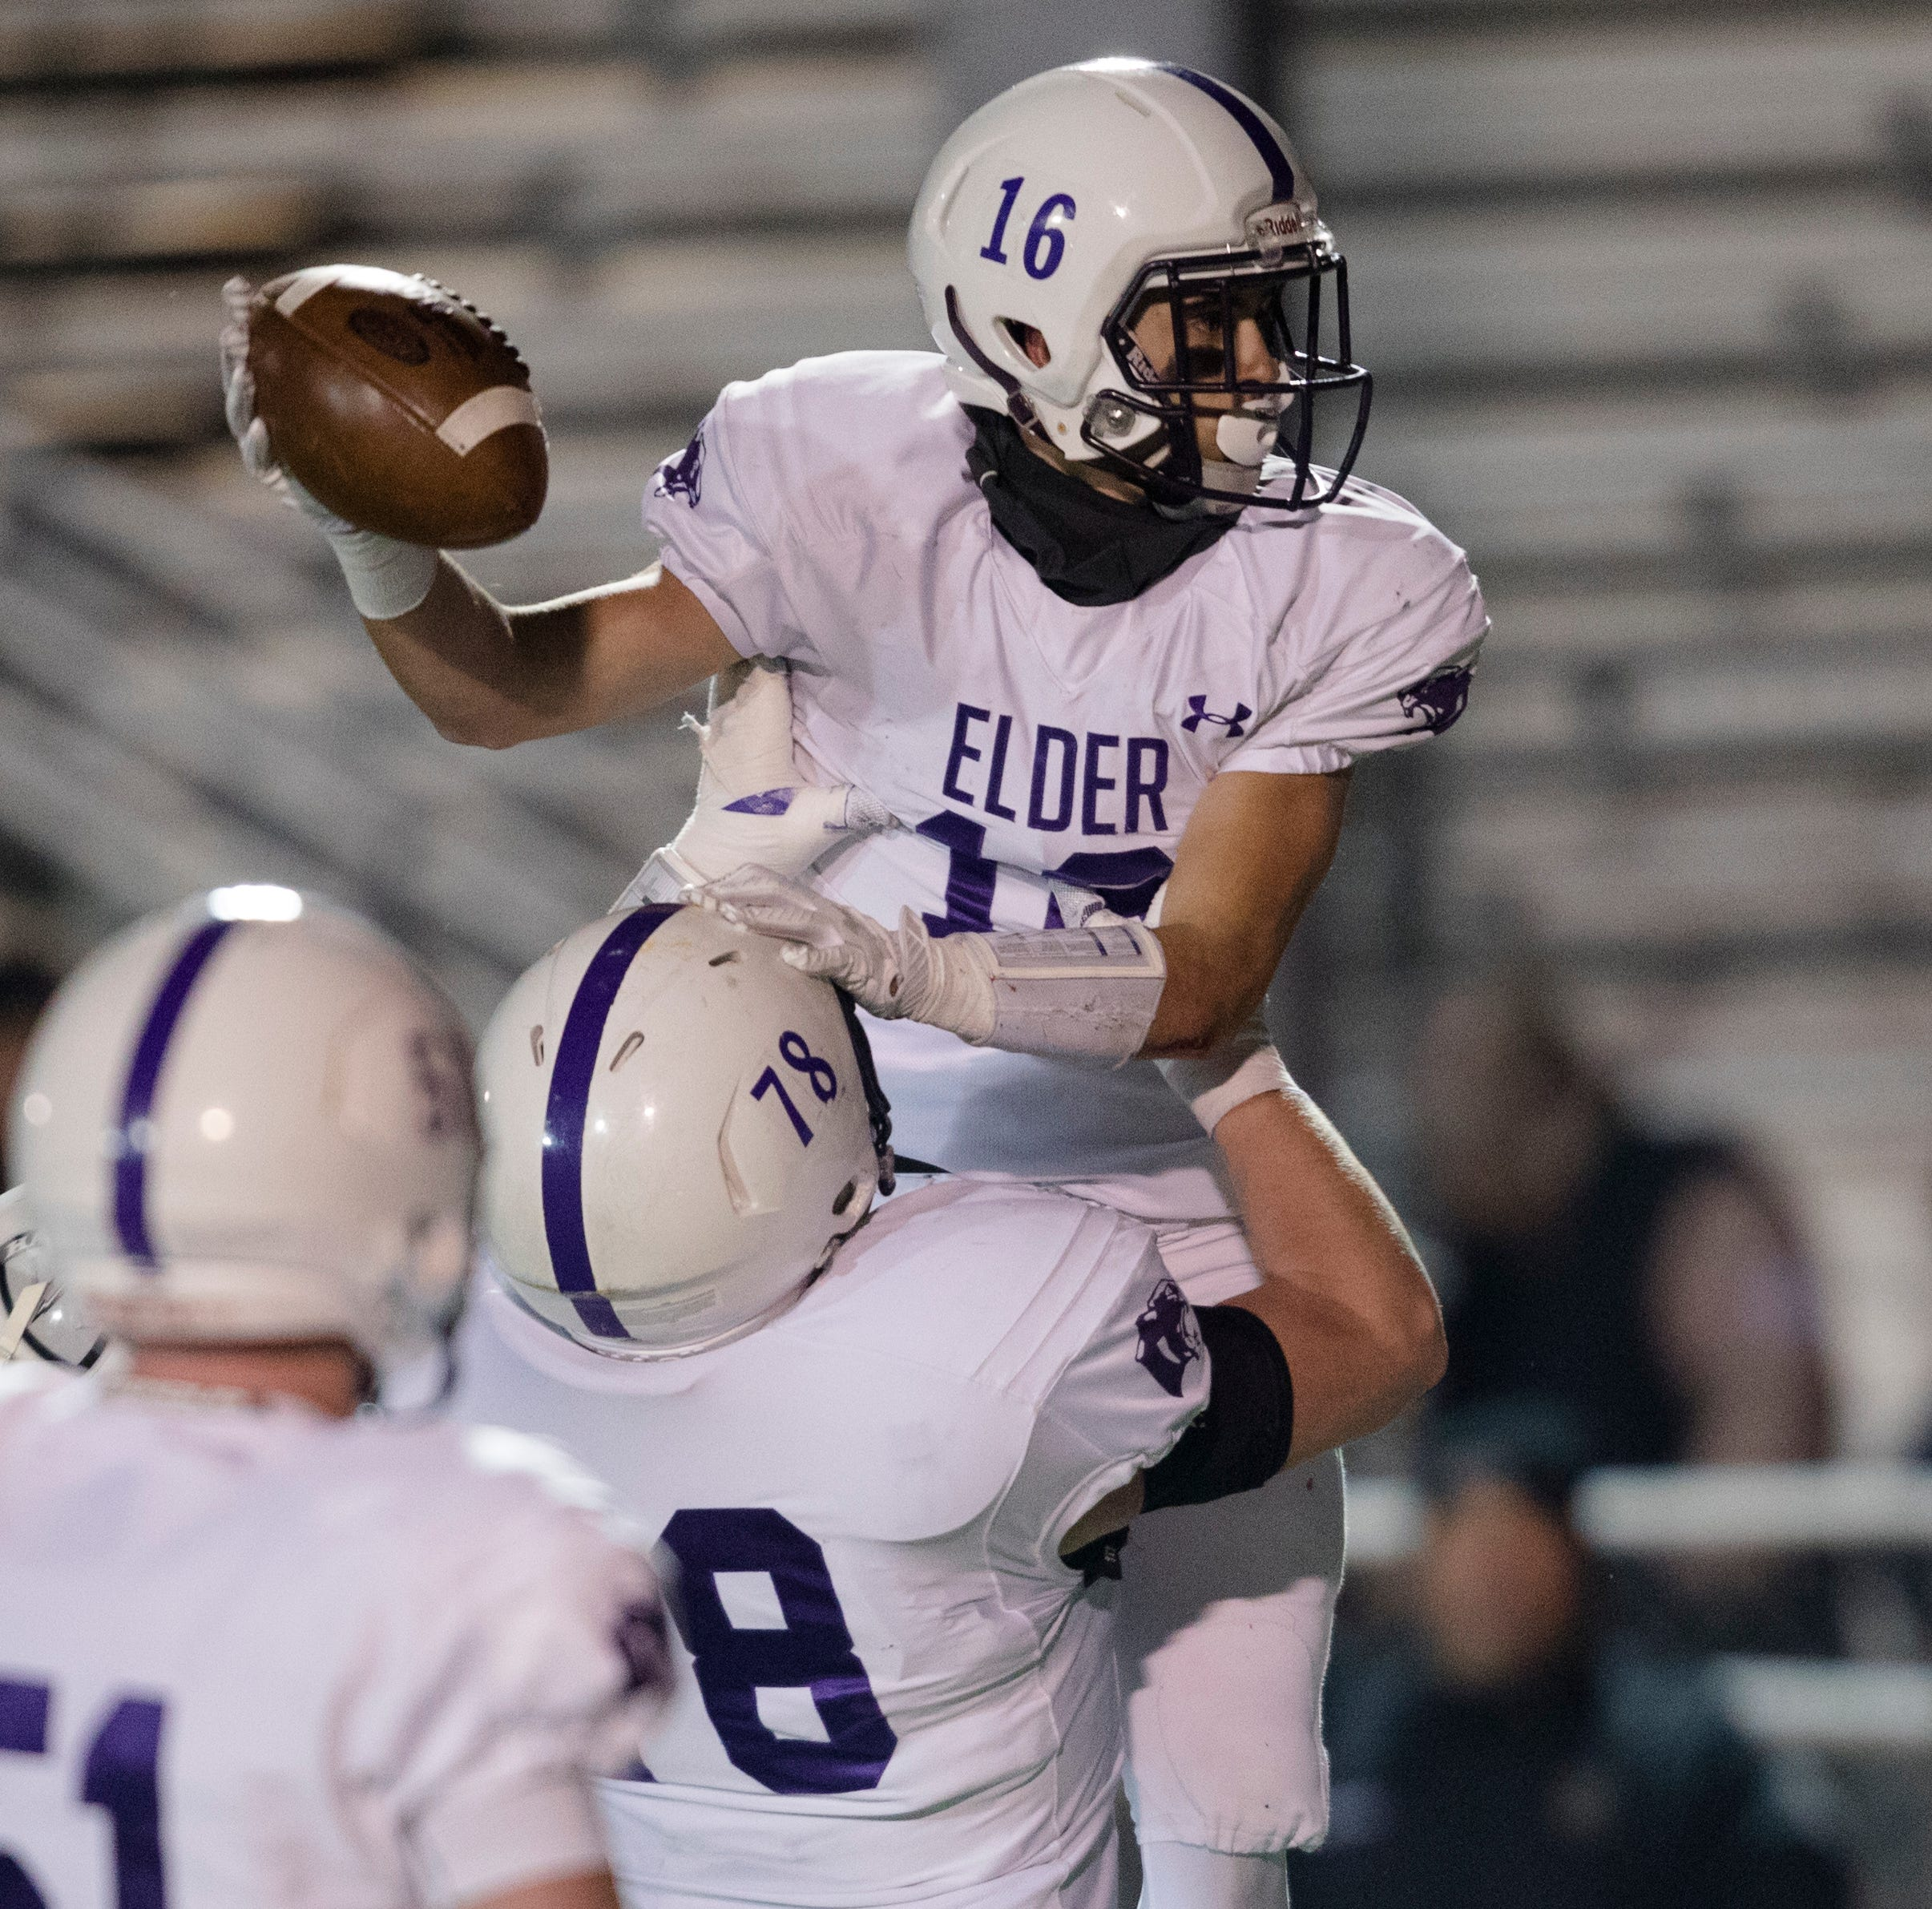 Elder's James verbals to OSU, joining St. Xavier's Johnson